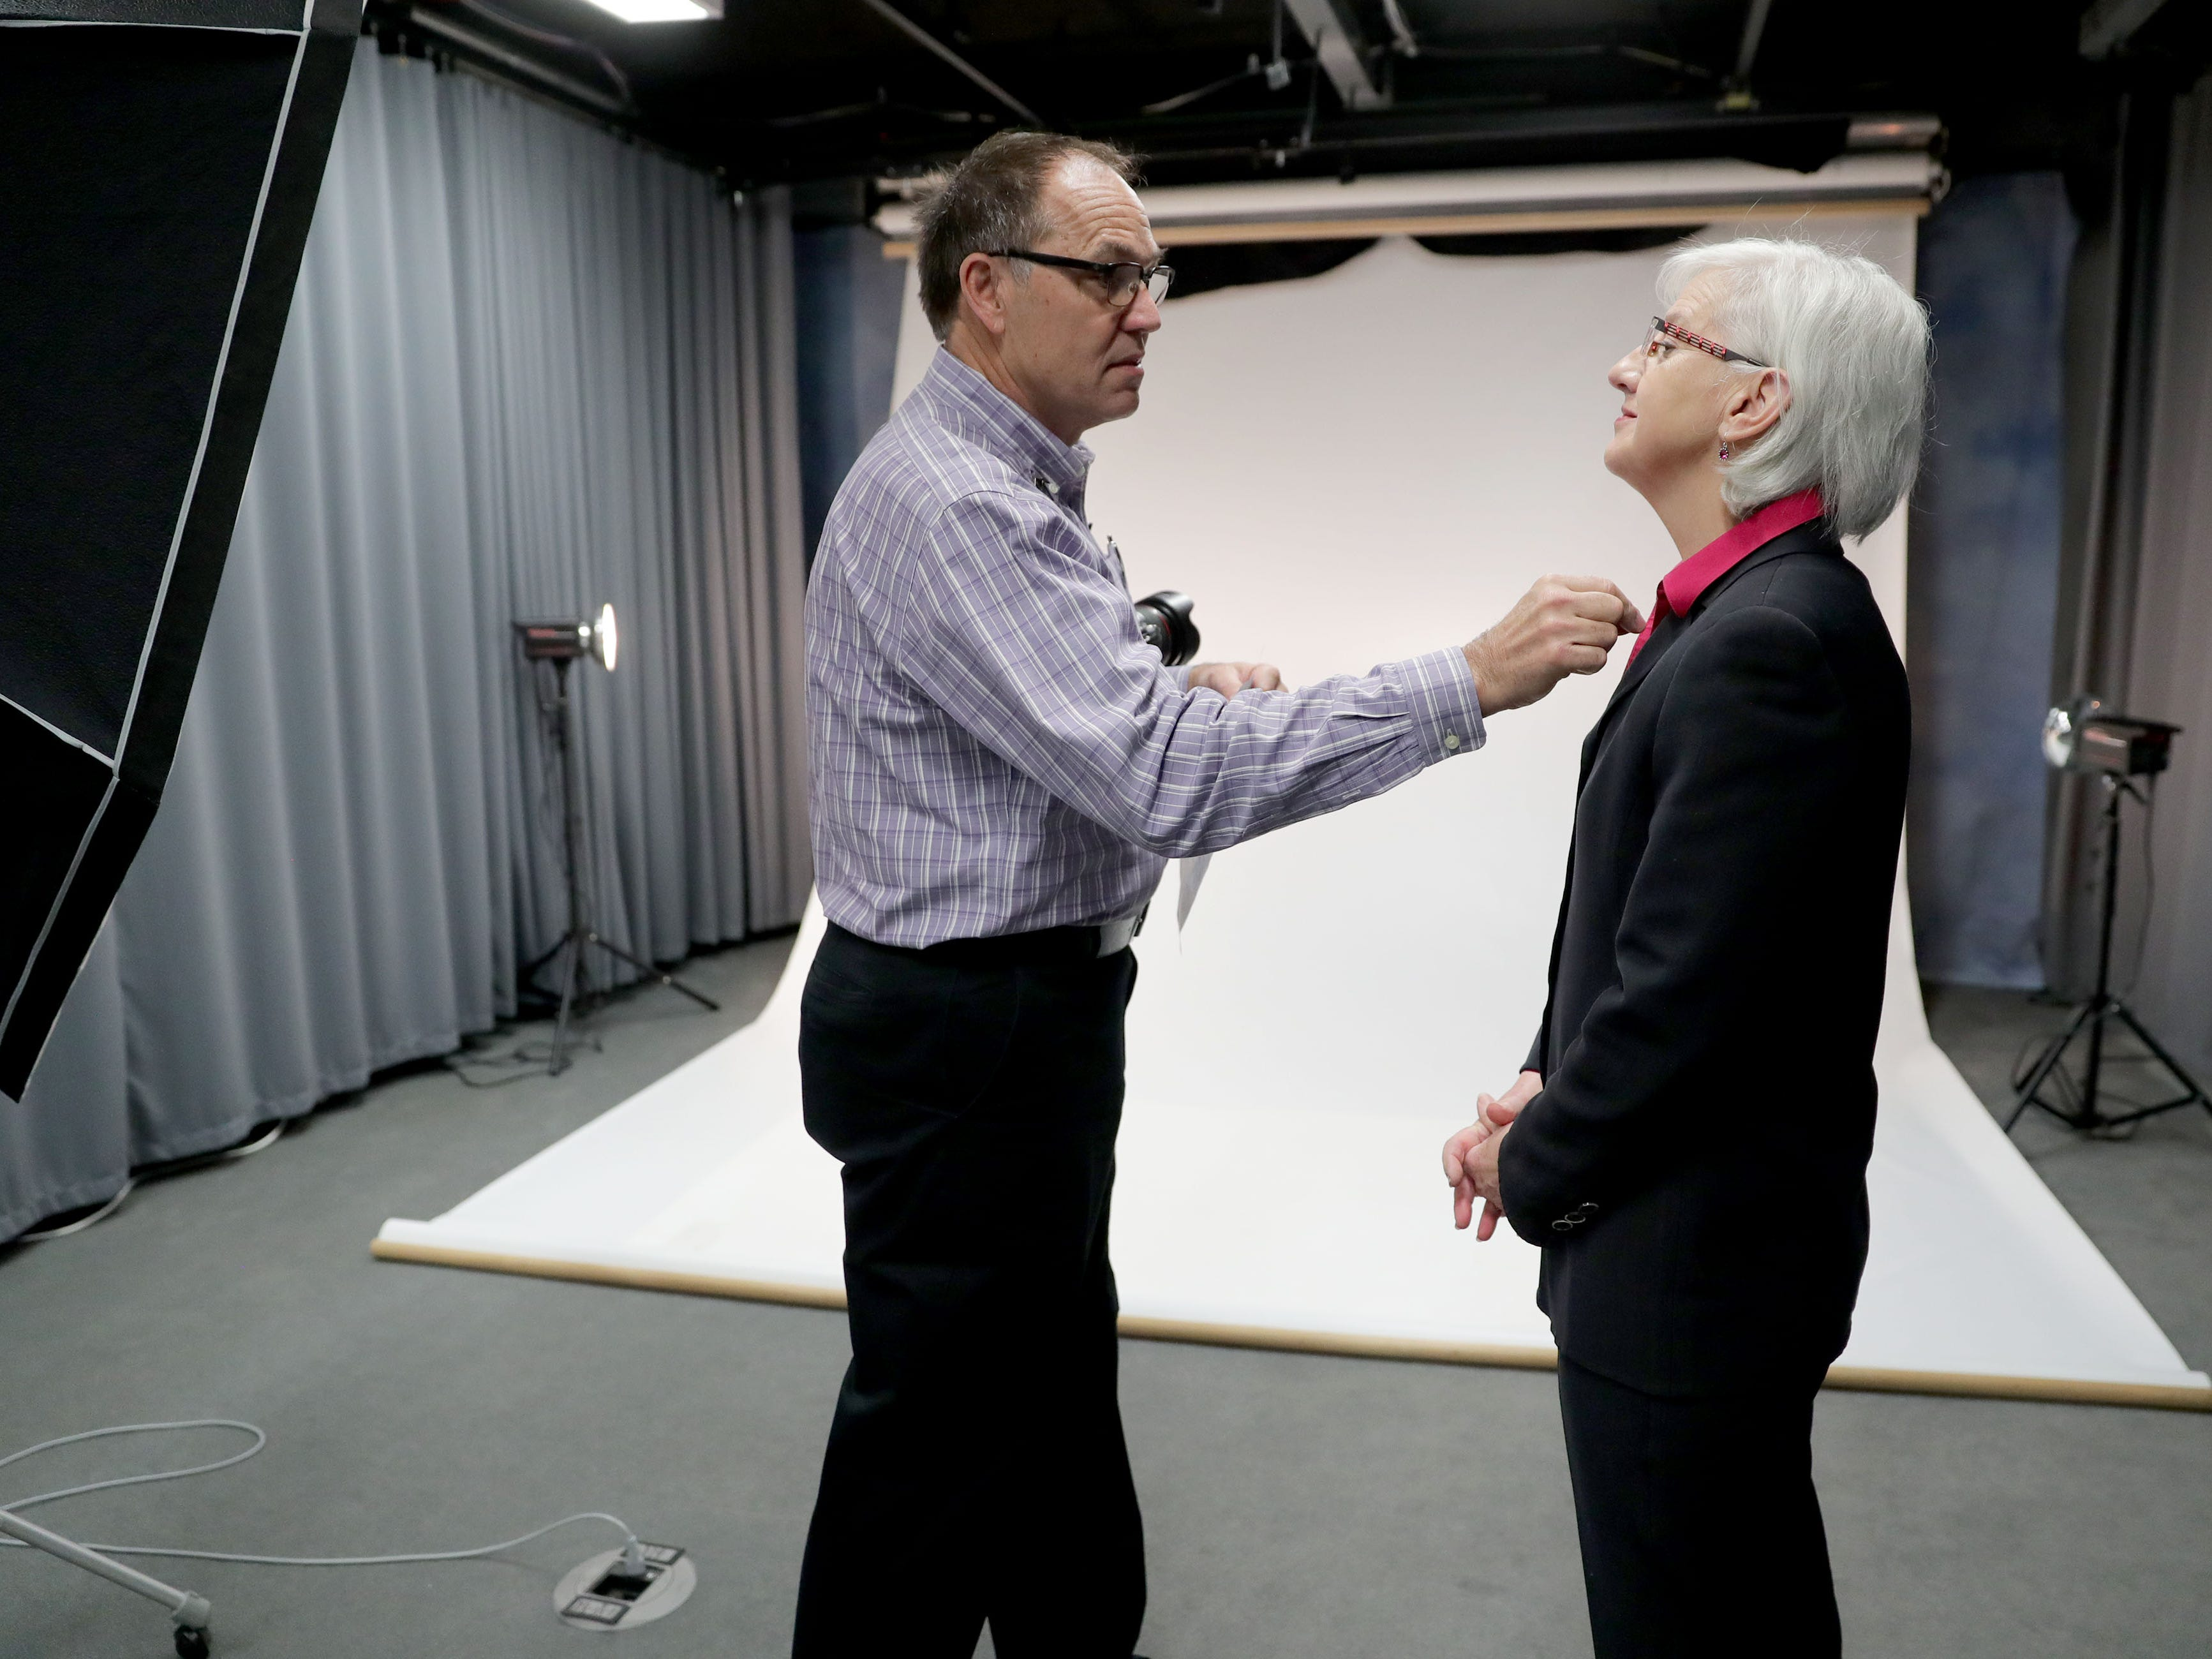 Photographer Eugene Russell removes a piece of lint from Wisconsin Department of Veterans Affairs Secretary-designee Mary M. Kolar before getting her photo taken at the Zablocki Veterans Affairs Medical Center in Milwaukee on Thursday, Jan. 17, 2019. The photo session was part of the The I Am Not Invisible project, that's been done in several states and made a stop at the VA Medical Center on Thursday. A photographer from Washington, D.C. captured portraits of female veterans of all branches, conflicts and age groups for a touring exhibit.